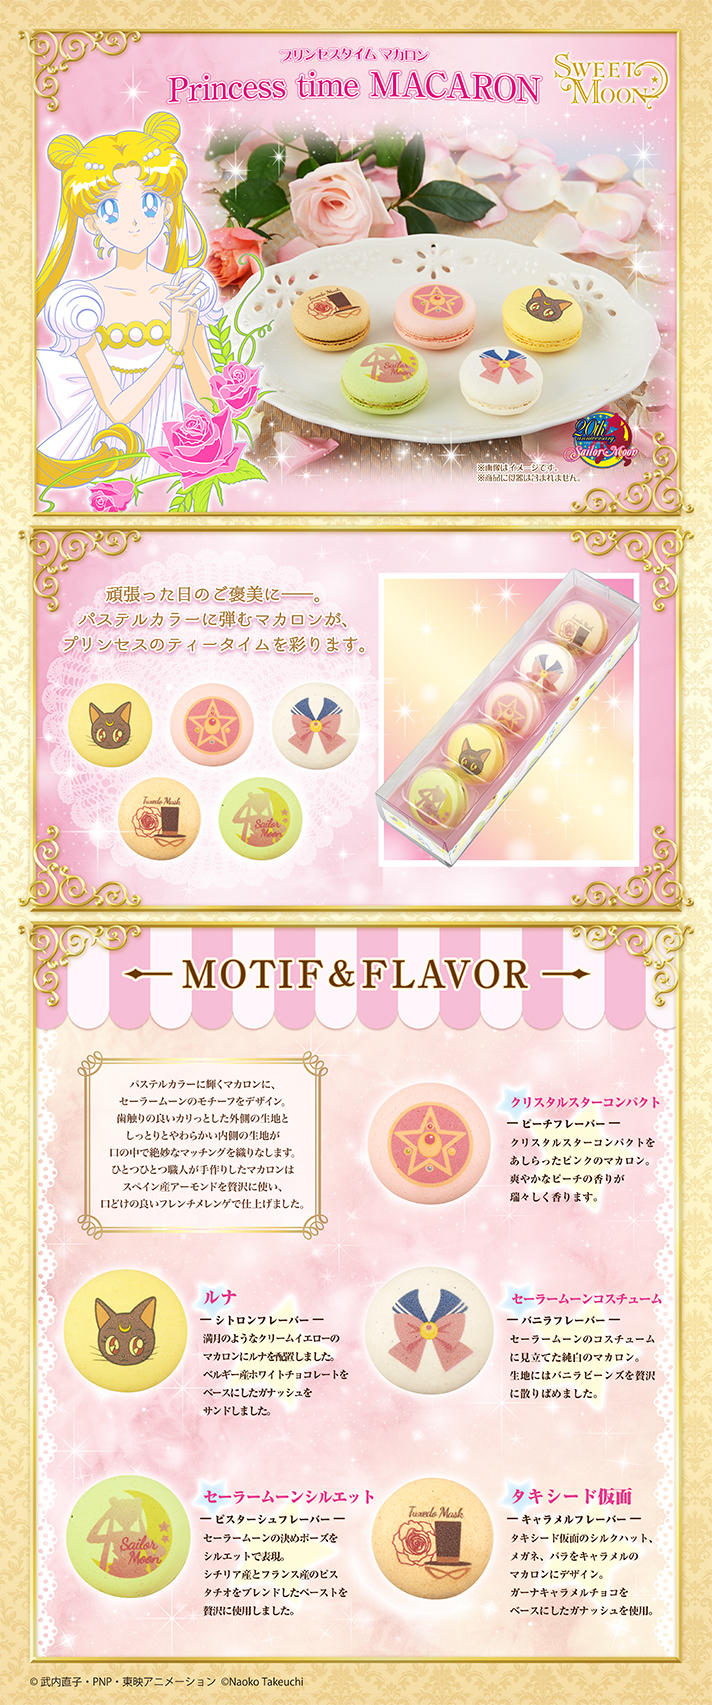 �V���N�� �L�����N�e�� SWEET MOON Princess time MACARON�y�v���~�A���o���_�C����z